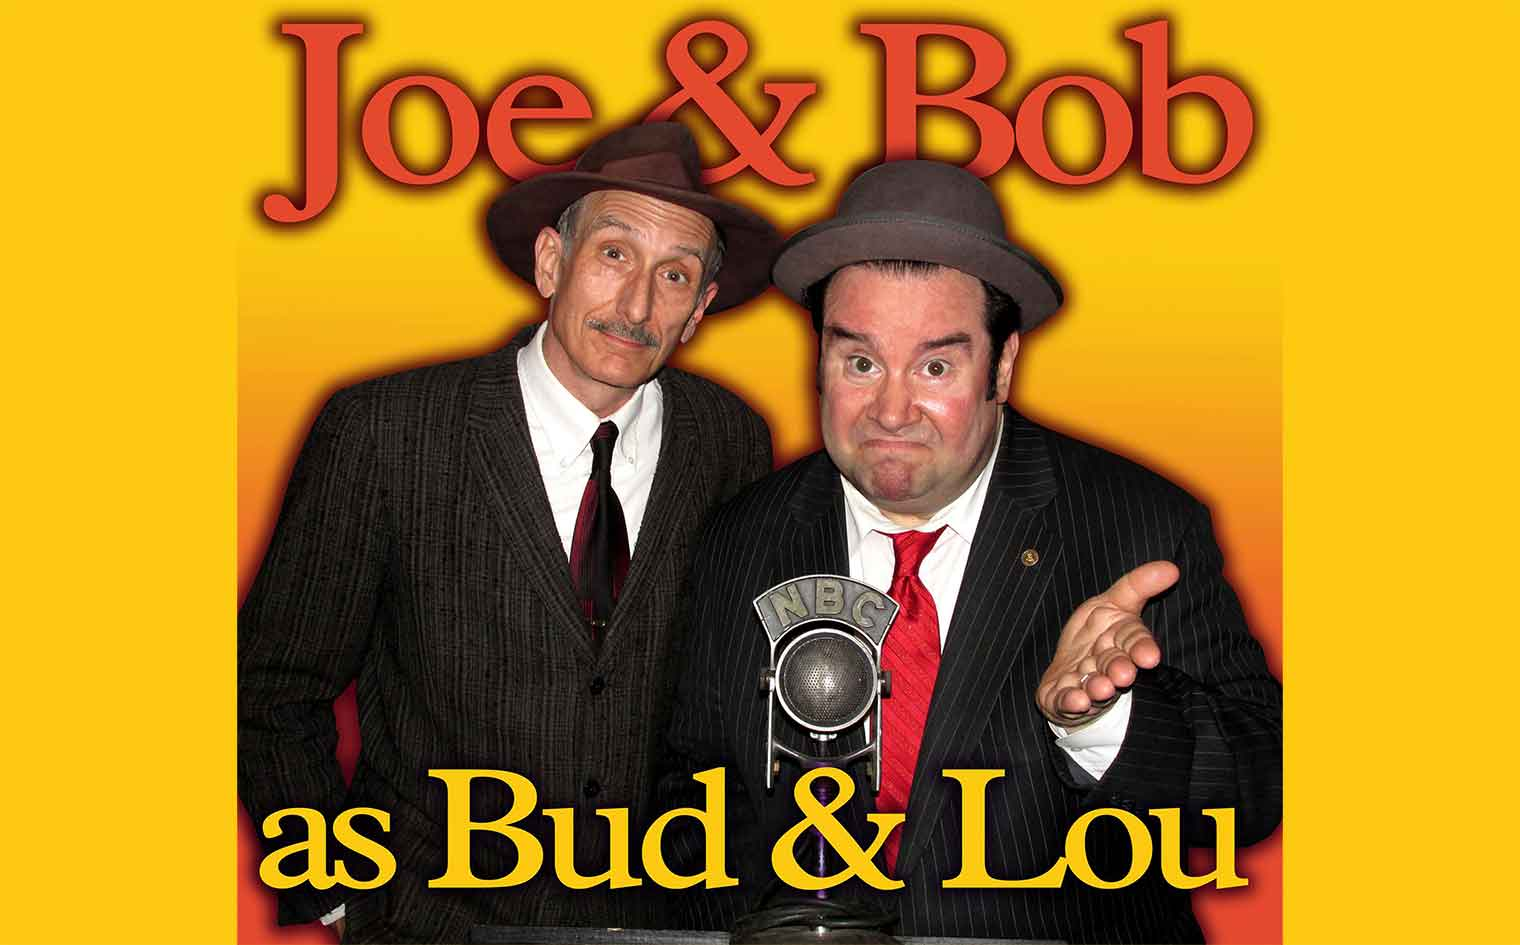 ABBOTT AND COSTELLO MEET THE INVISIBLE MAN with Joe Bev and Bob Greenberg in person as Bud and Lou